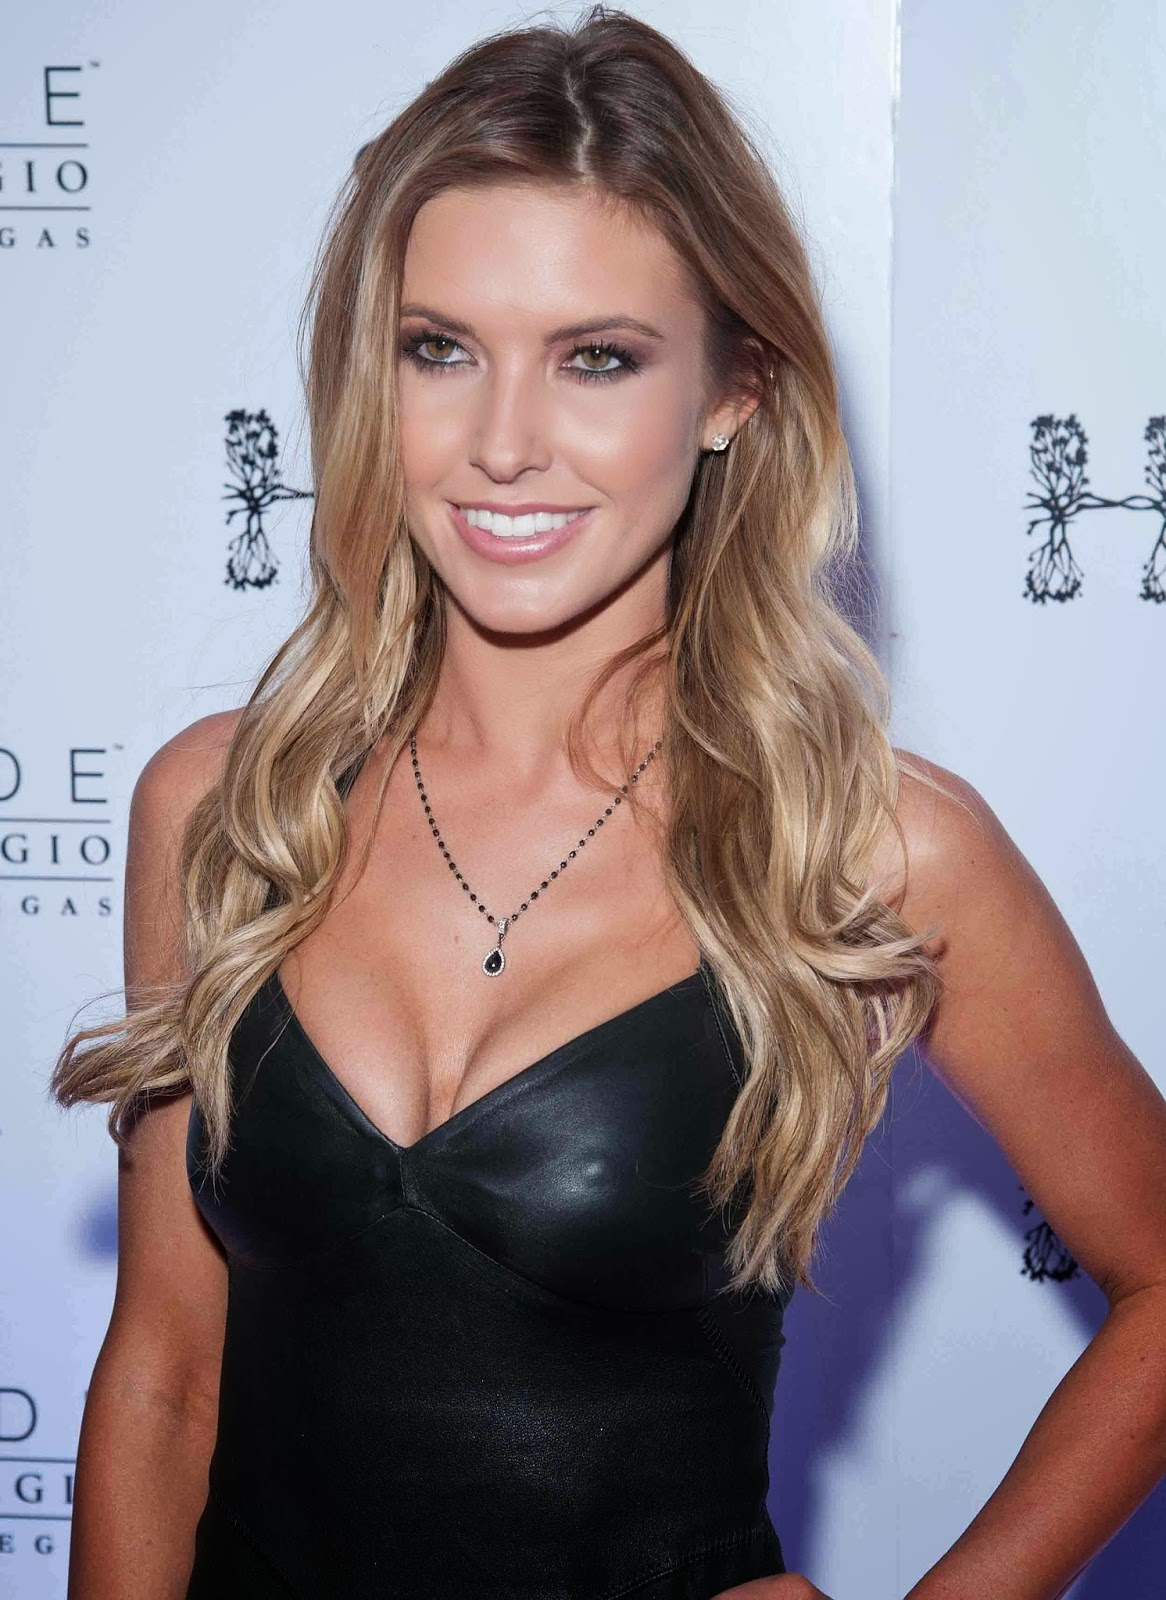 The 32-year old daughter of father Mark Patridge and mother Lynn Patridge, 170 cm tall Audrina Patridge in 2018 photo